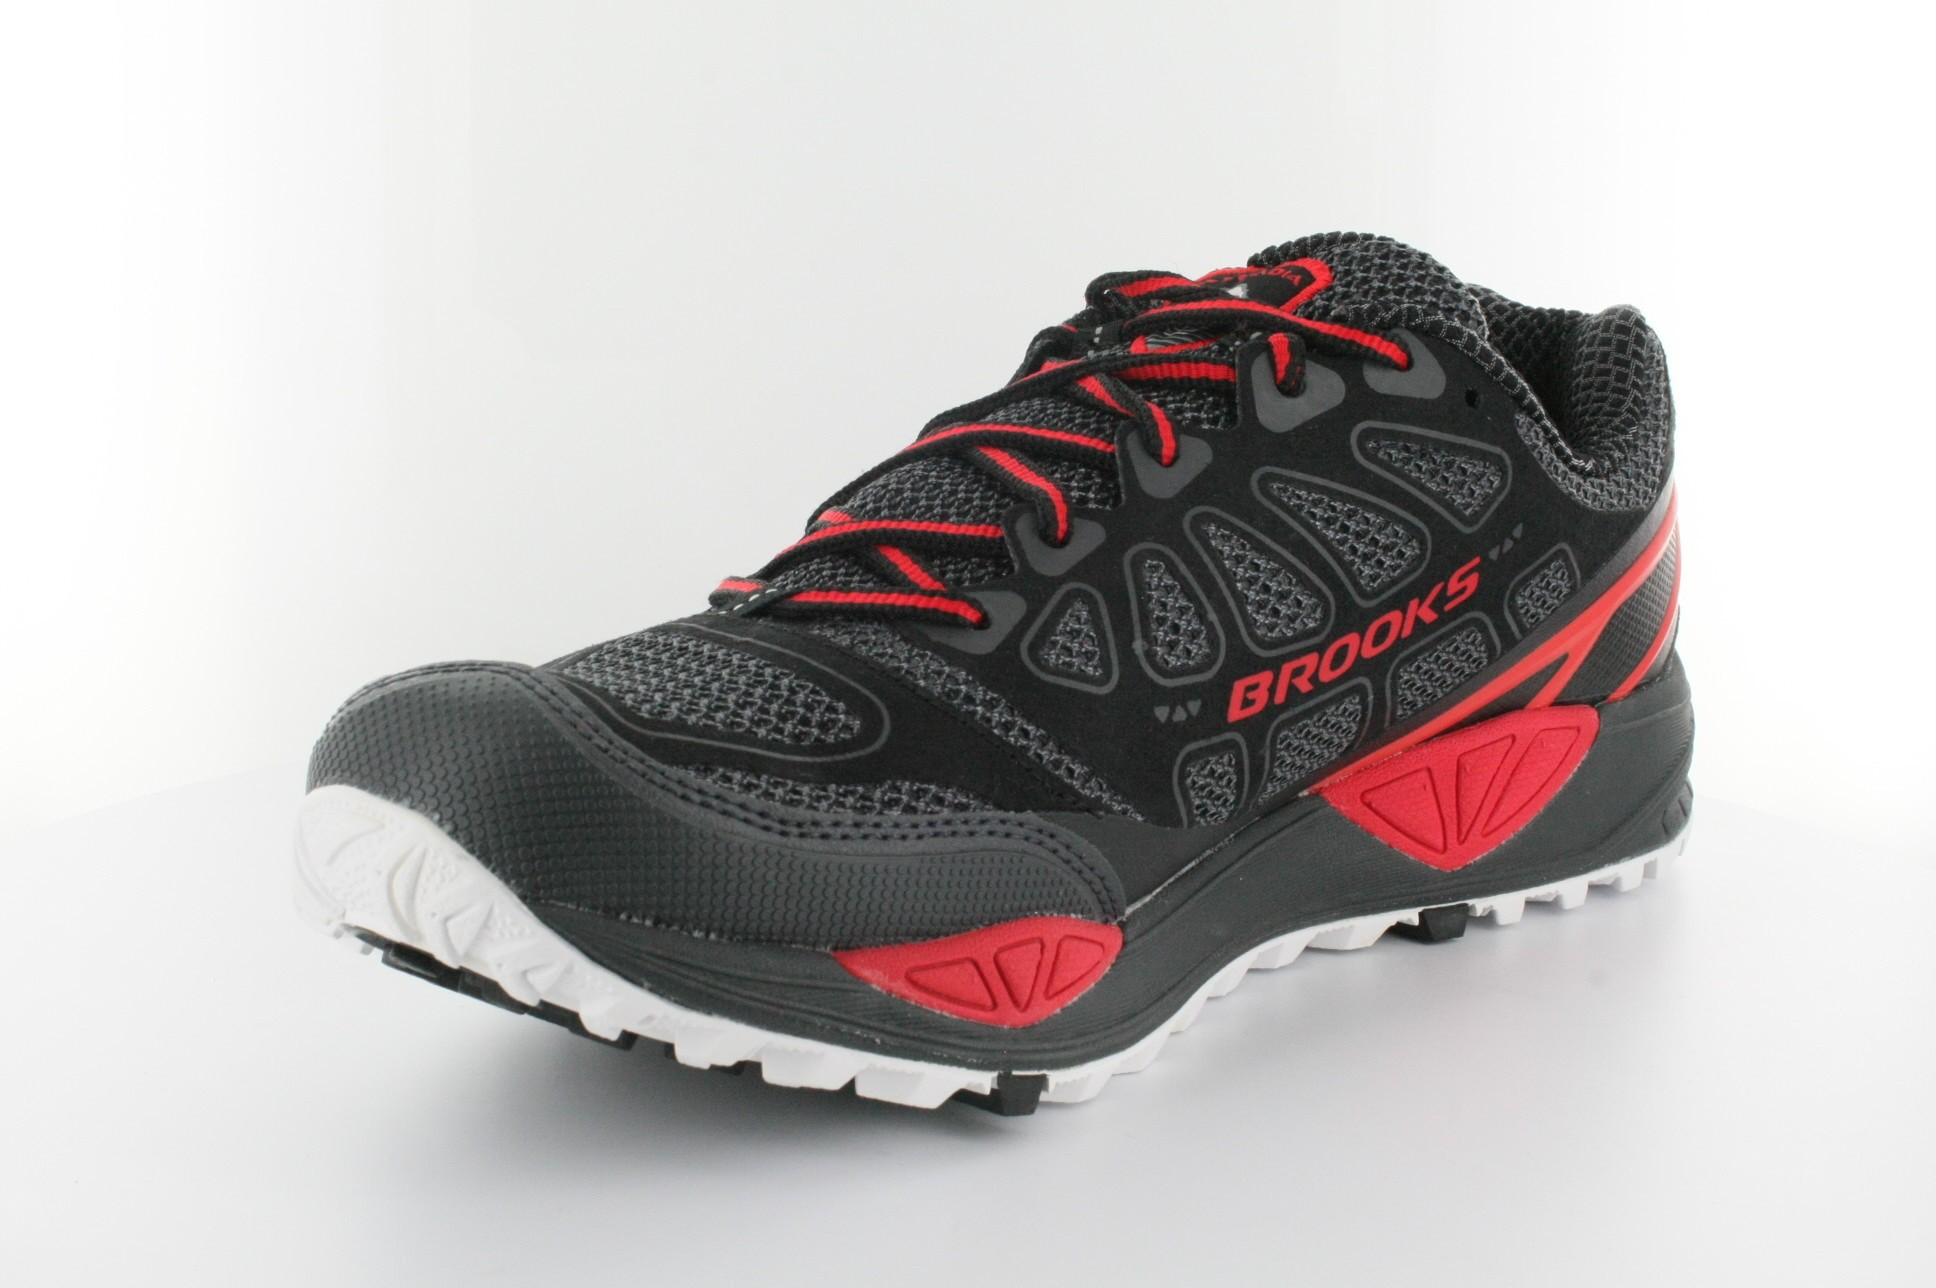 Brooks Cascadia Running Shoes Review